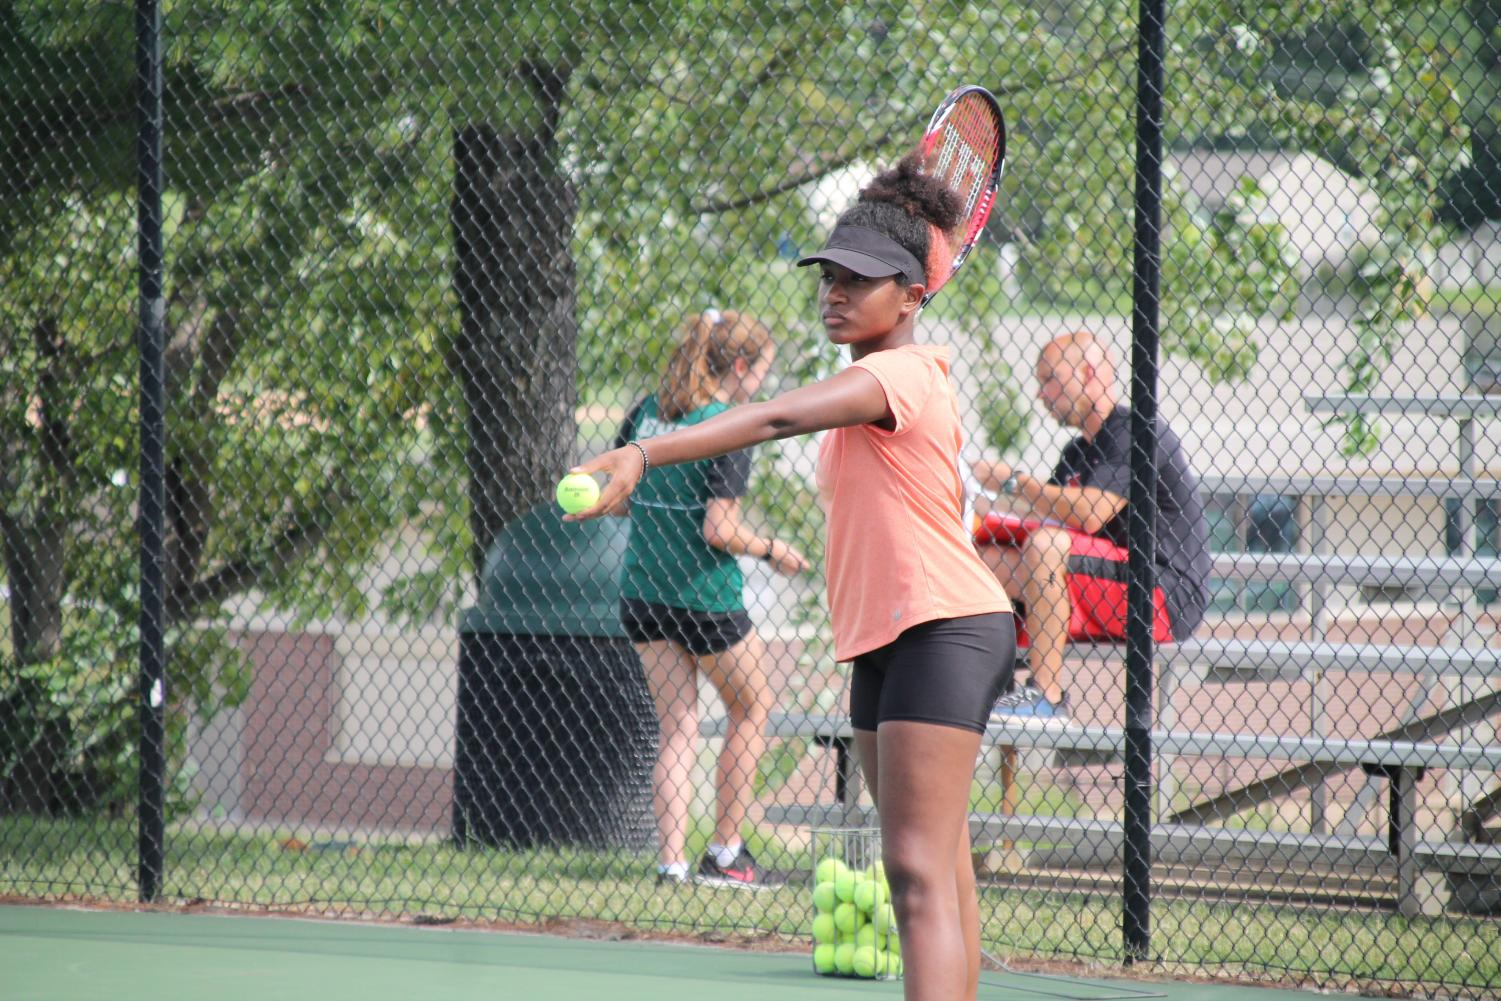 Imani Warren, 11th grade, concentrates on perfecting her toss for her serve.